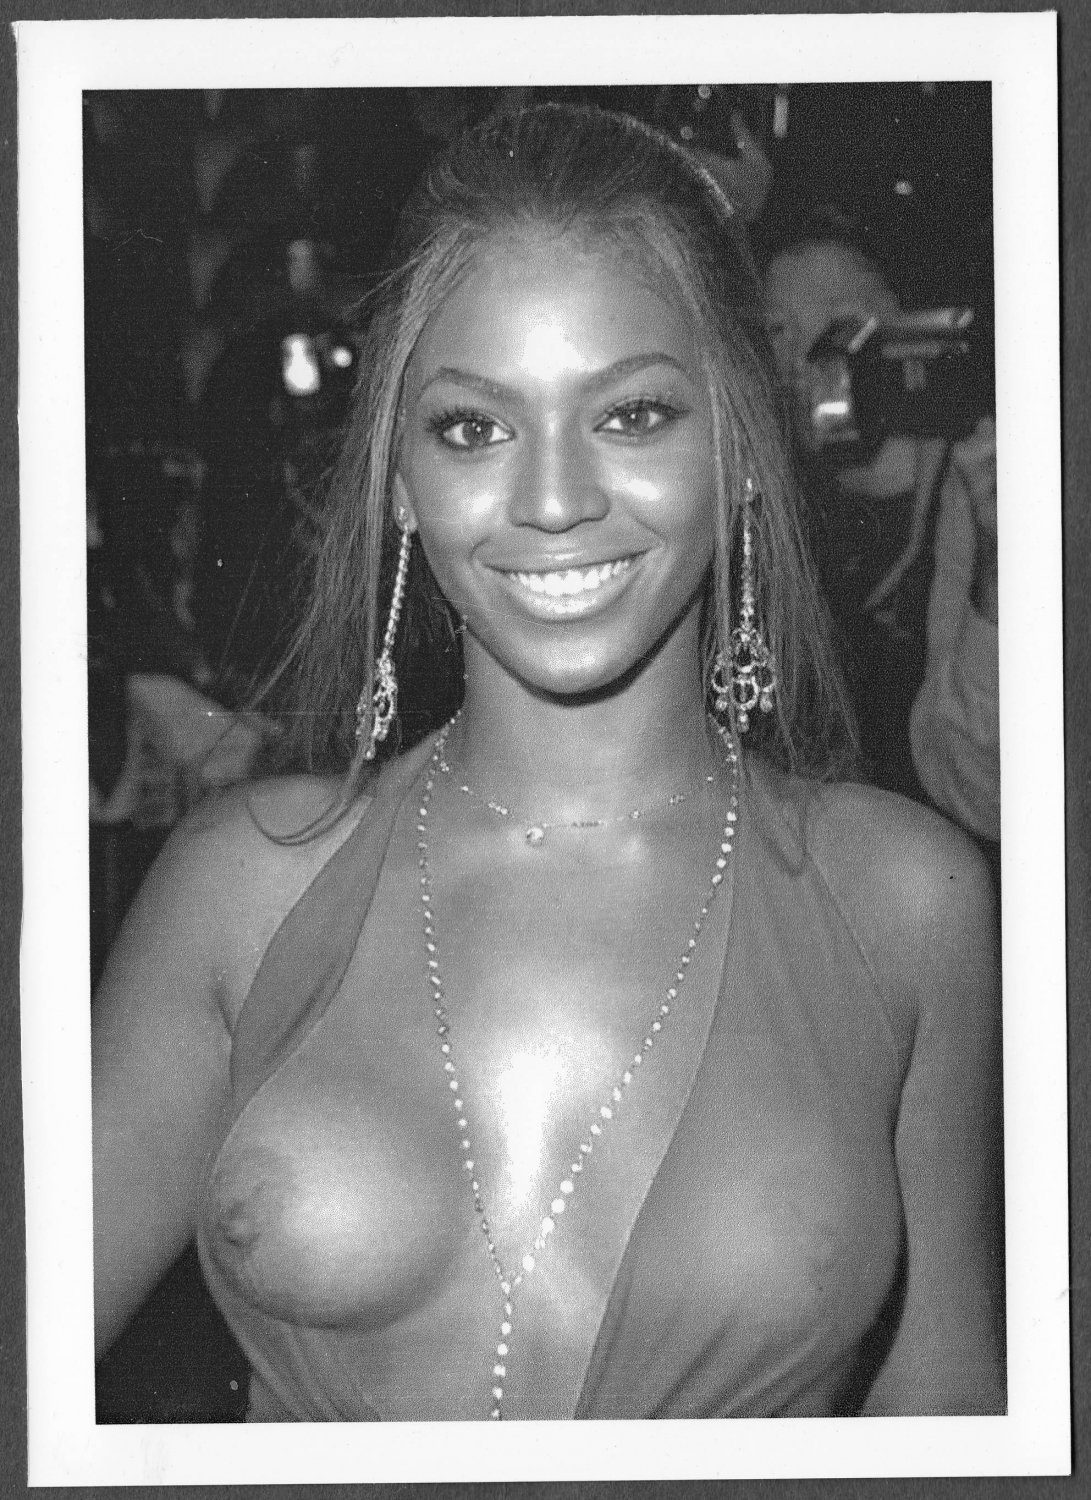 BEYONCE KNOWLES TOPLESS NEW REPRINT PHOTO 5X7 #5